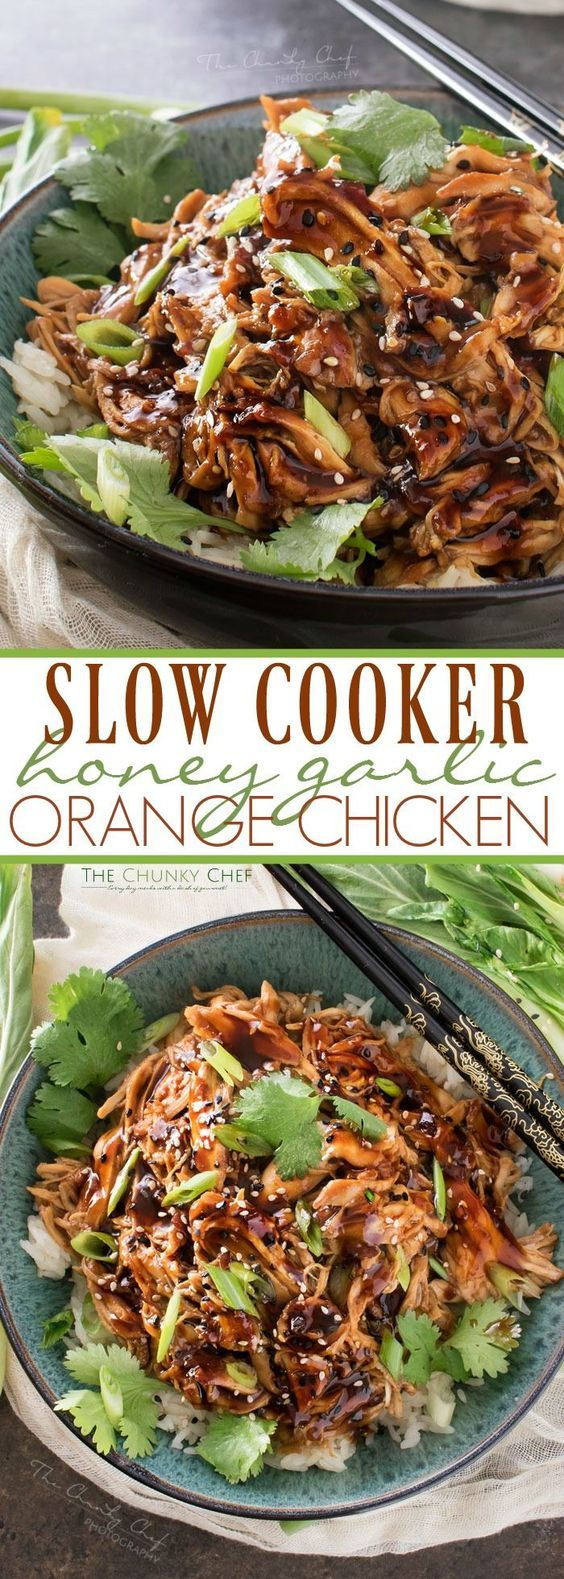 Slow Cooker Honey Garlic Chicken | Tender, moist, honey garlic chicken made easy in the slow cooker, and coated in the most glorious homemade honey garlic and orange sauce! | http://thechunkychef.com  AD